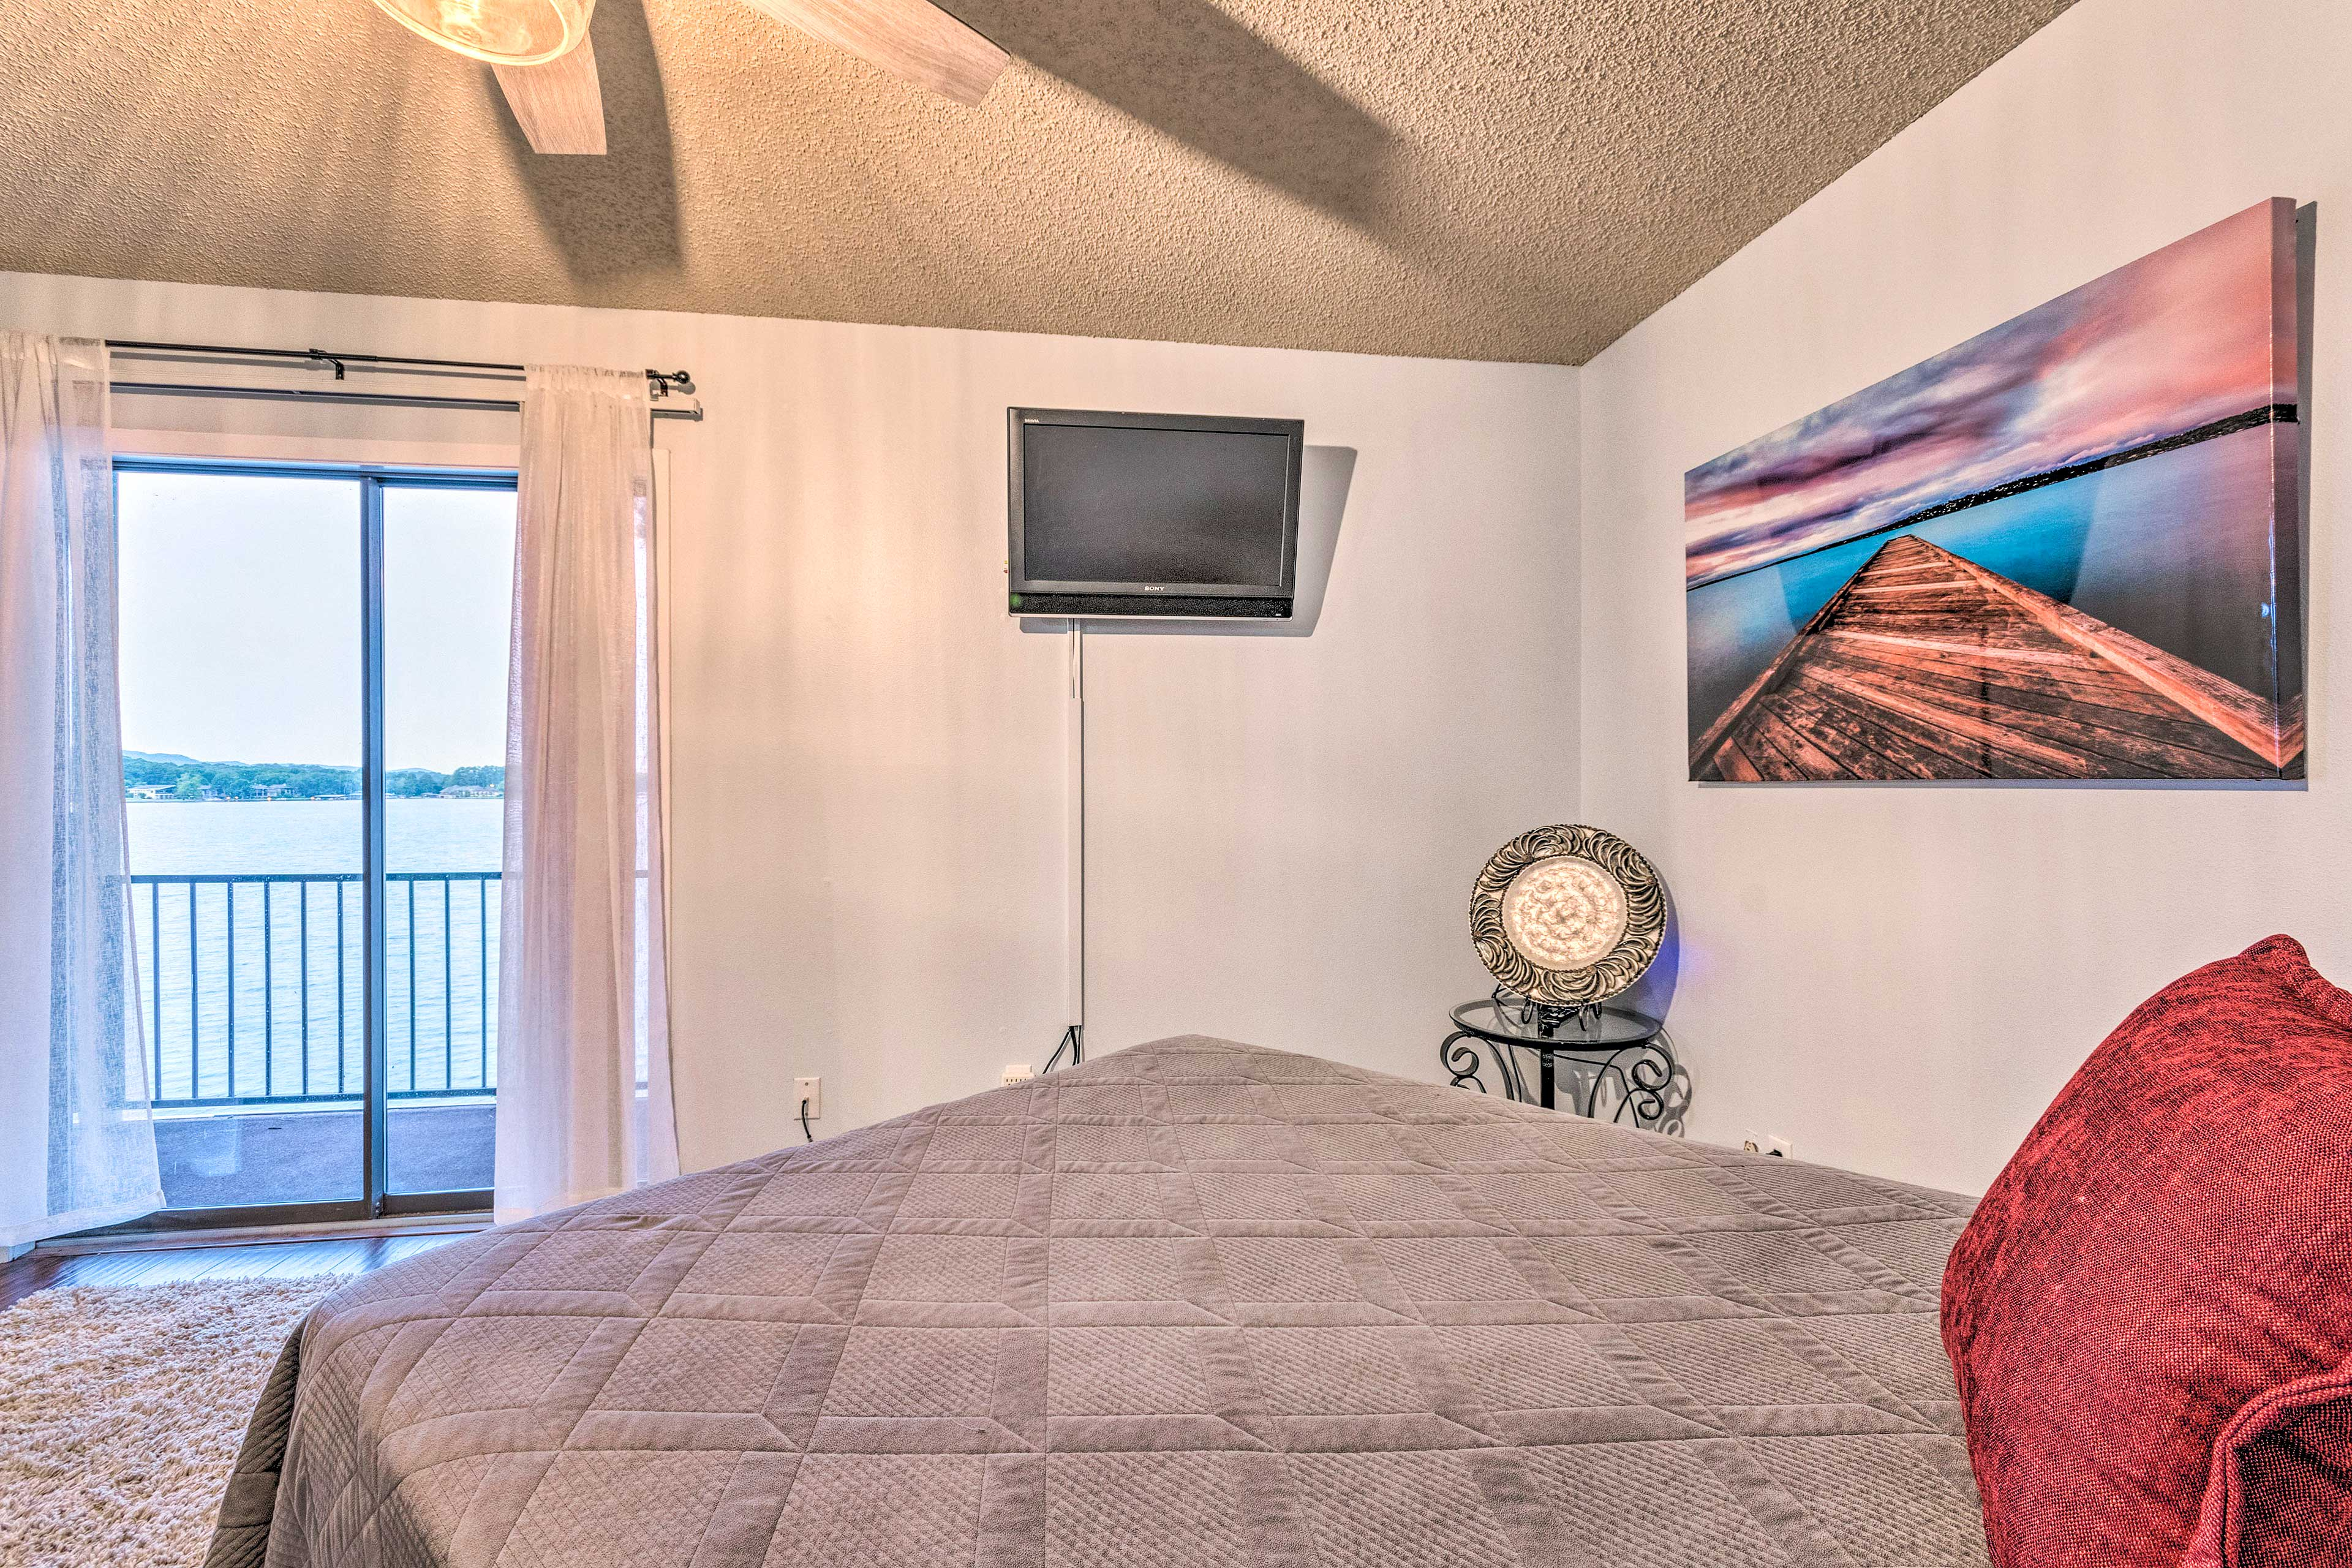 The master bedroom boasts a queen bed and balcony access.